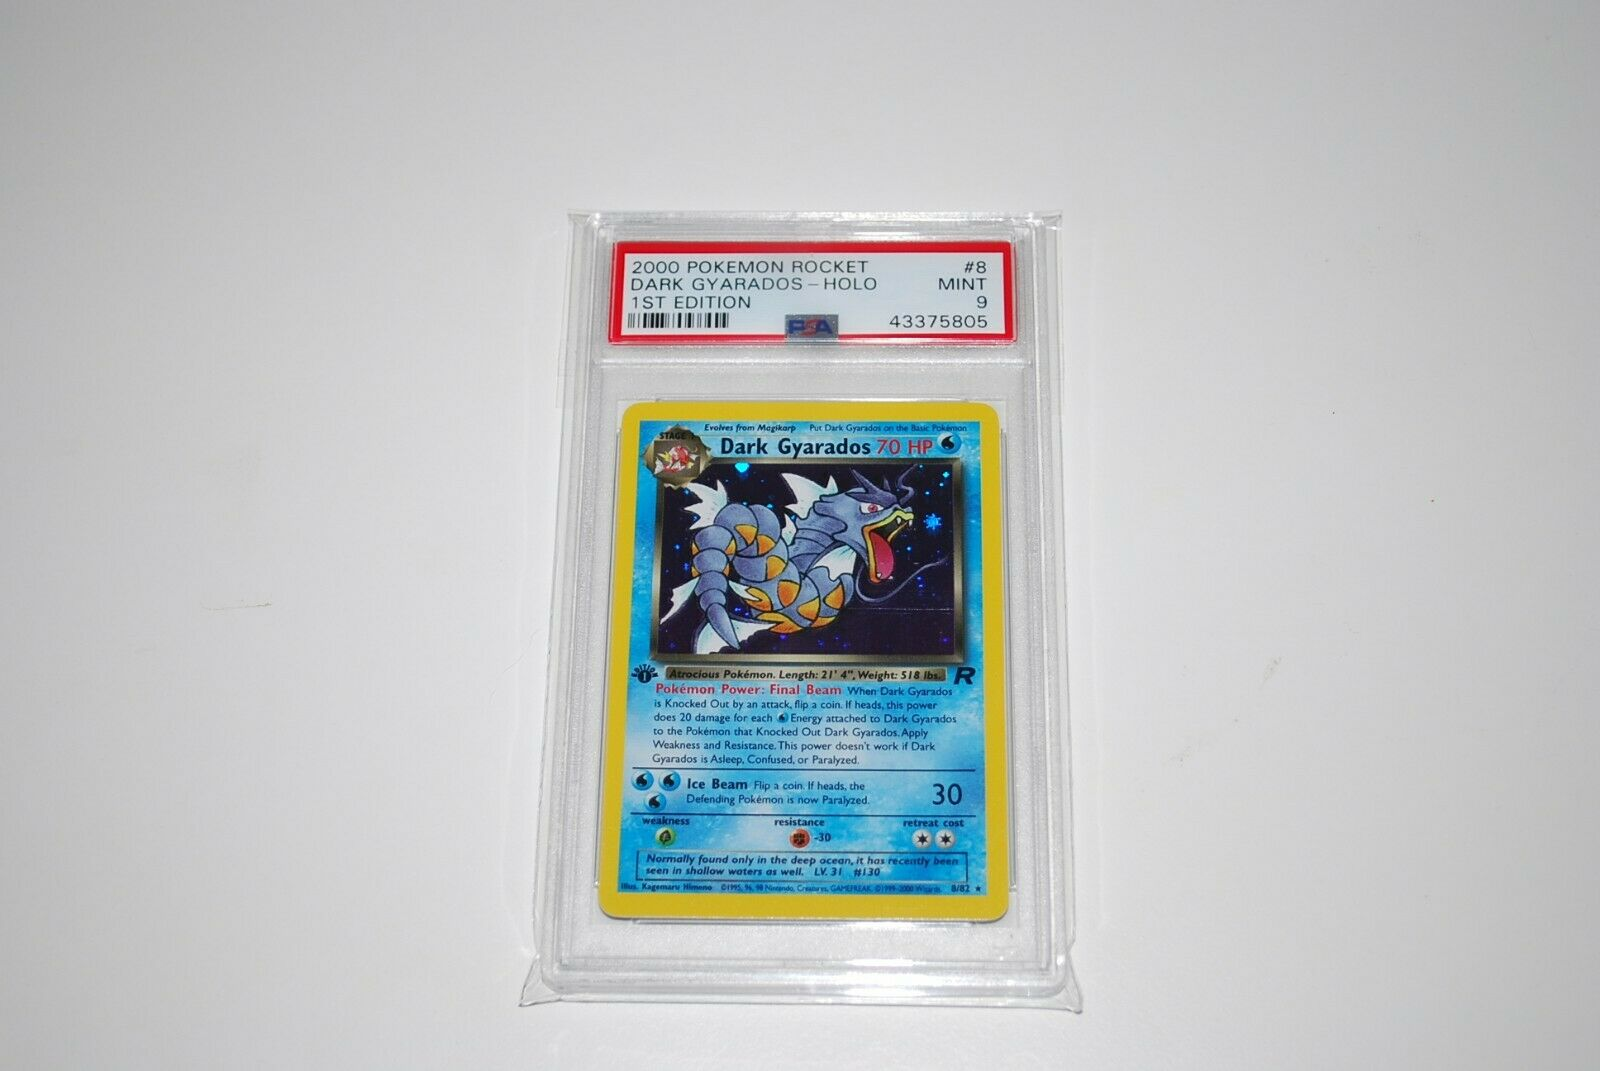 PSA 9 Mint 1st Edition Dark Gyarados Holo 882 Team Rocket Pokemon Card